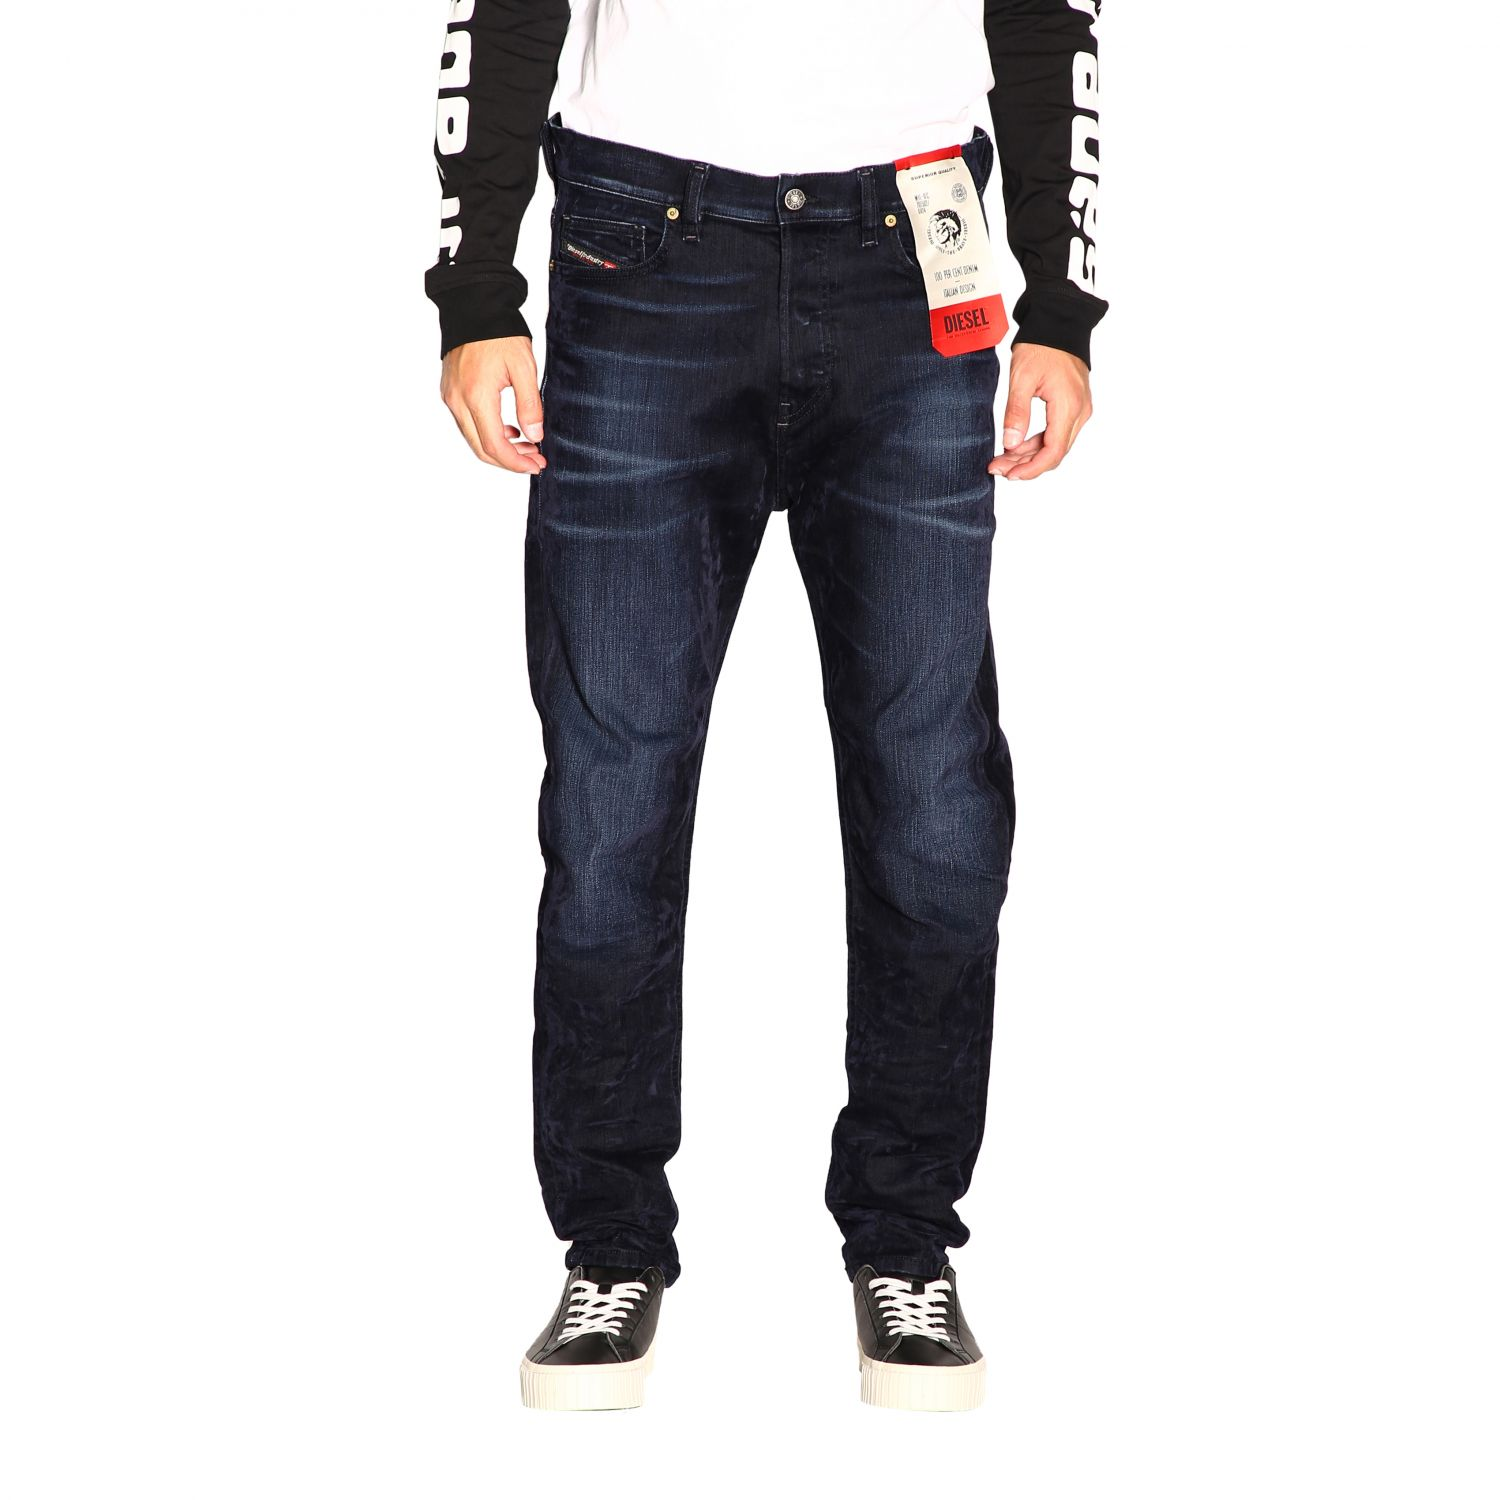 Jeans Diesel: Diesel D-vider Stretch jeans with low crotch and velvet treatment blue 1